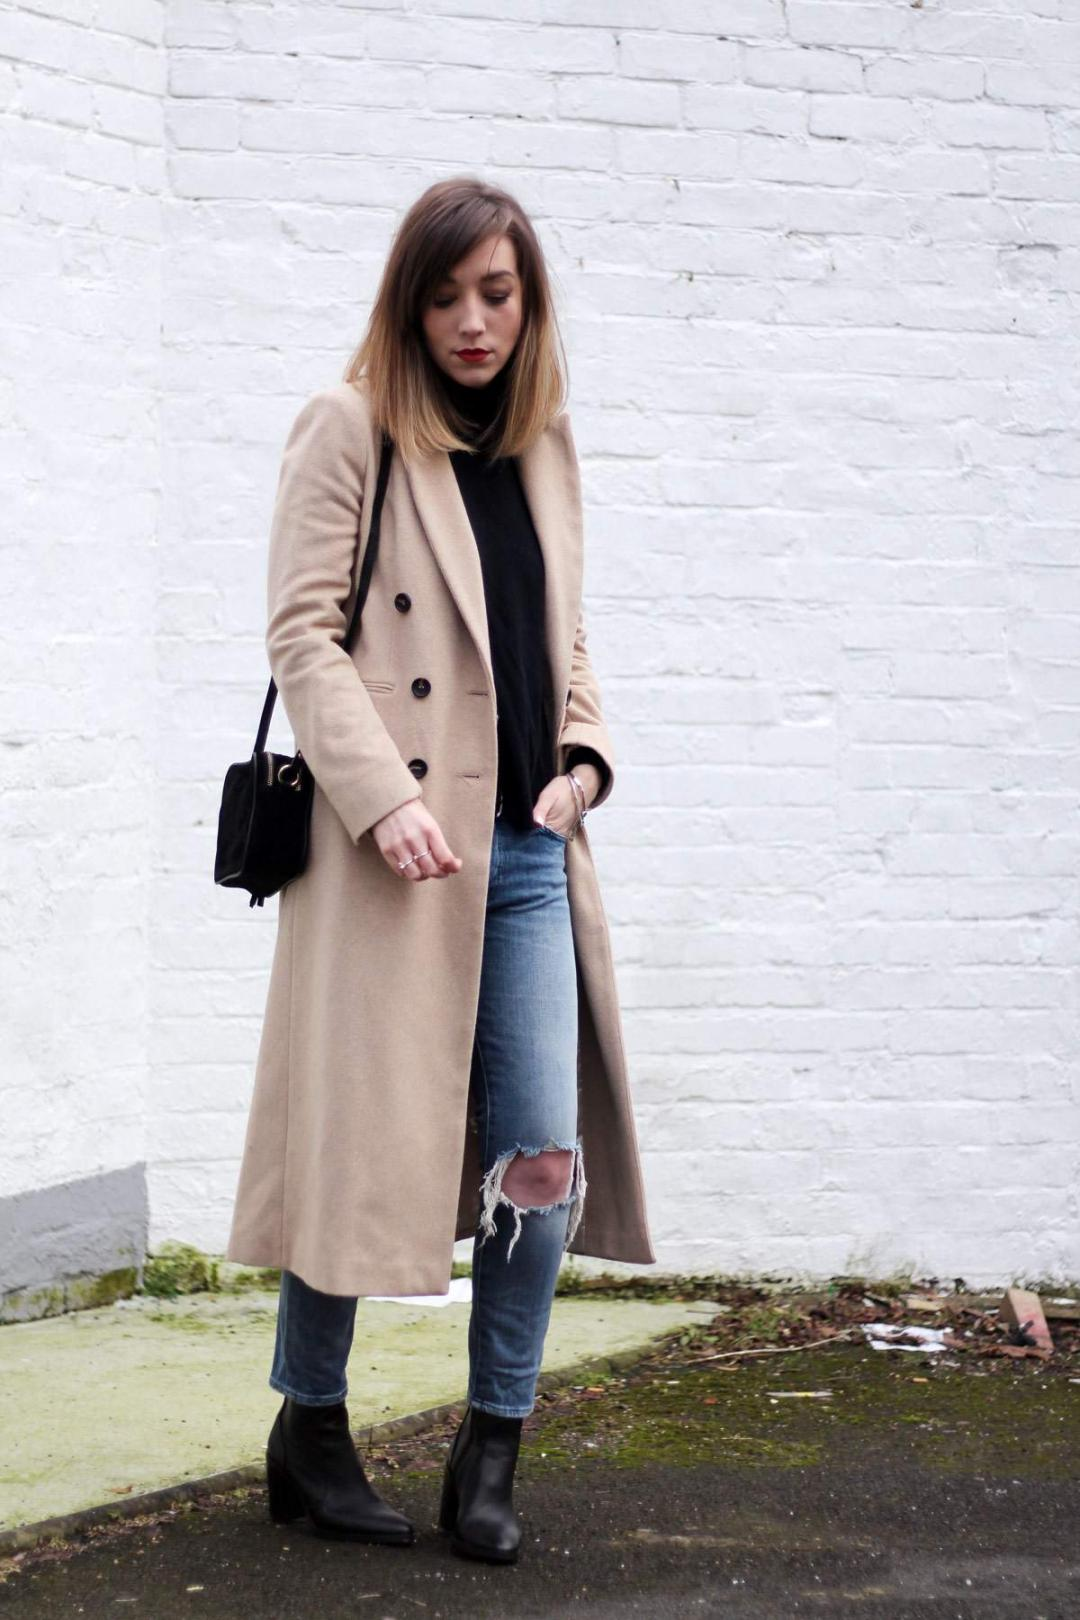 topshop-outfit-long-camel-coat-sock-boots-7-for-all-mankind-jeans-suede-bag